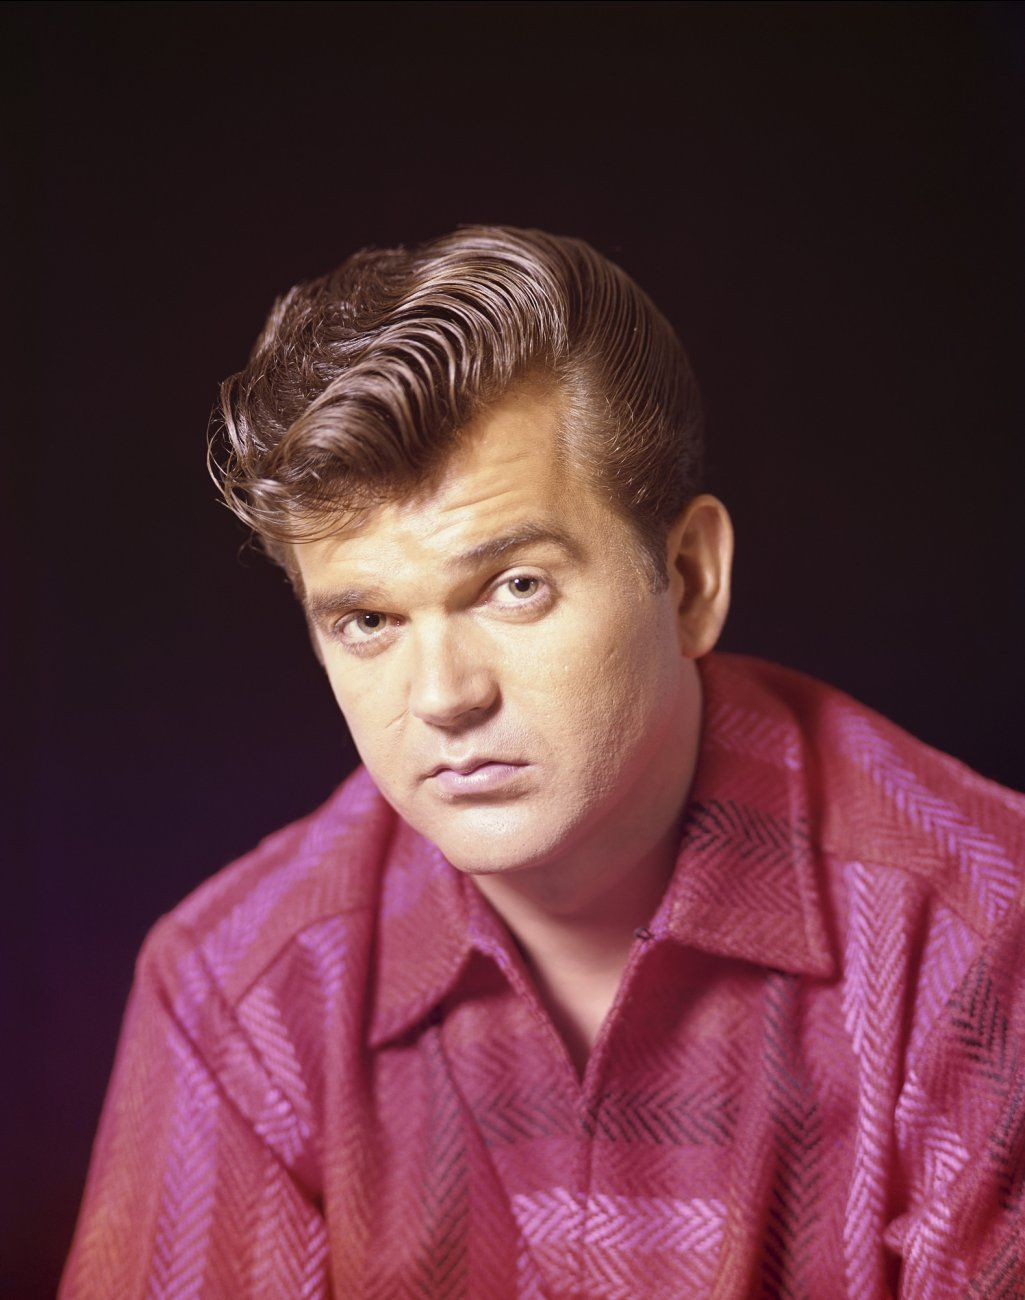 A photo of conway twitty by archive not listed conway